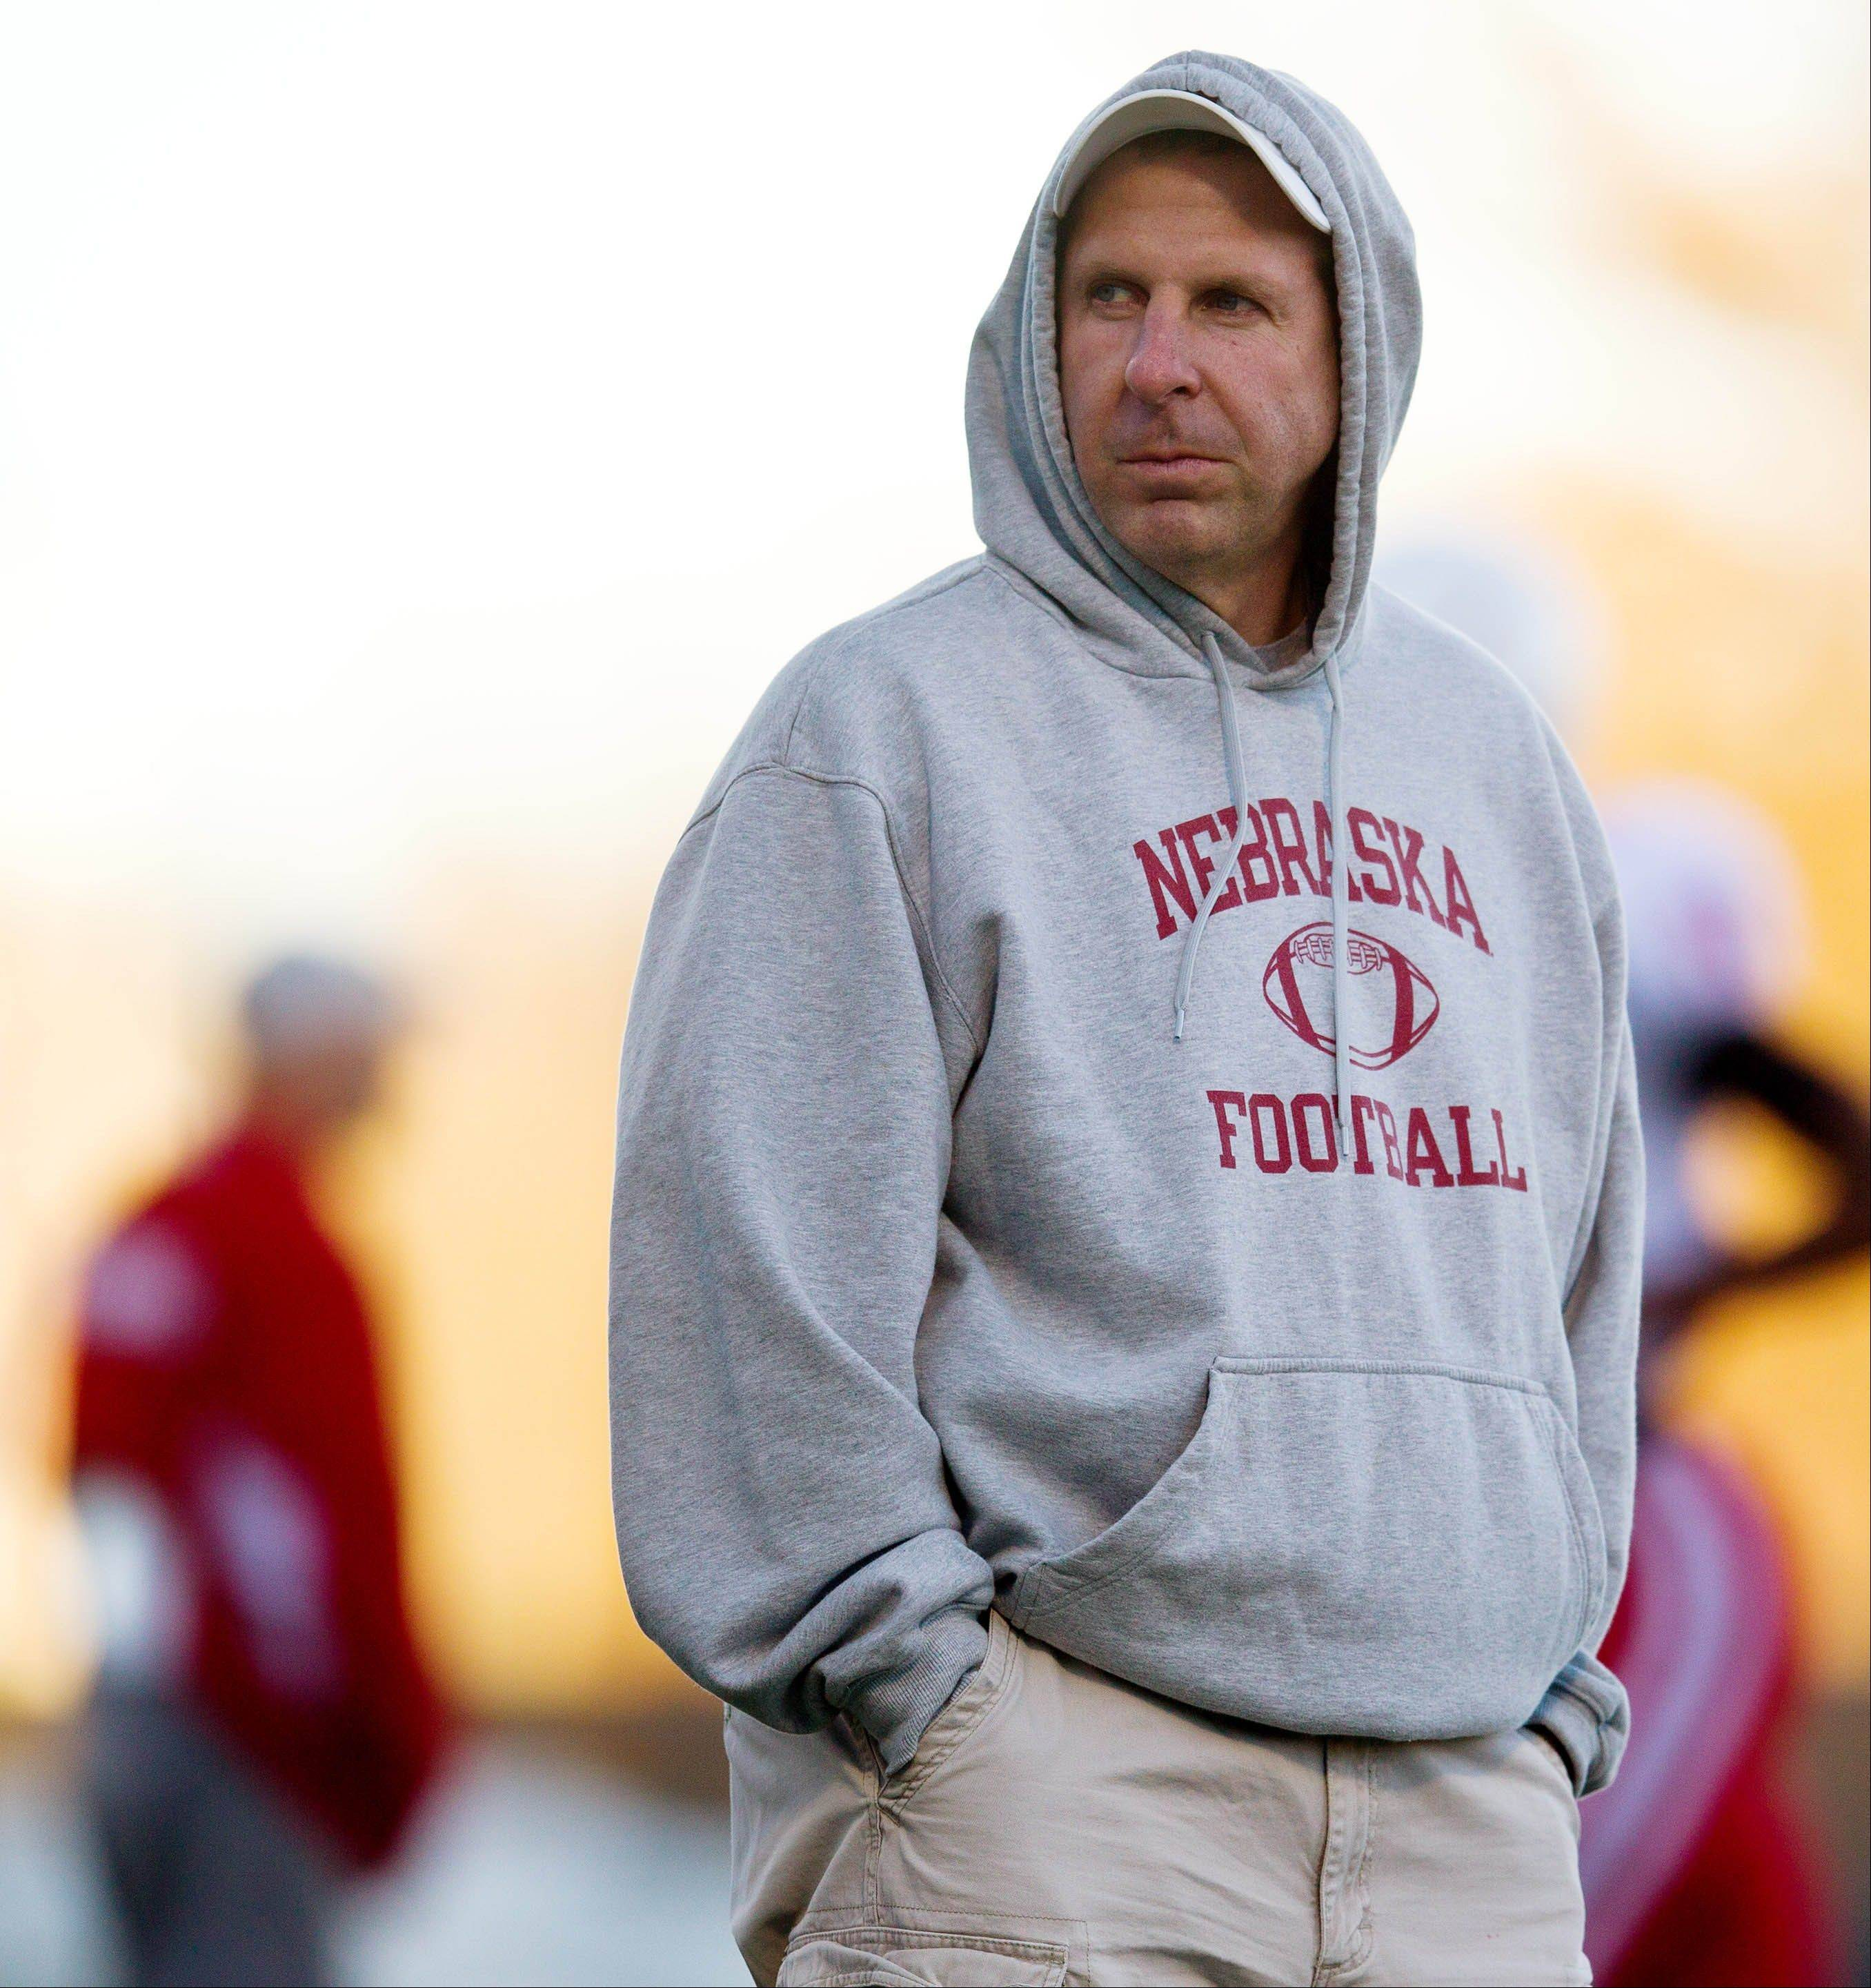 Nebraska football coach Bo Pelini watches players warm up Tuesday during practice in Lincoln. The Huskers� minus-1 turnover margin is last in the Big Ten and 106th in the nation. Of 14 other teams with the same or worse margin, only Oklahoma State has a winning record.